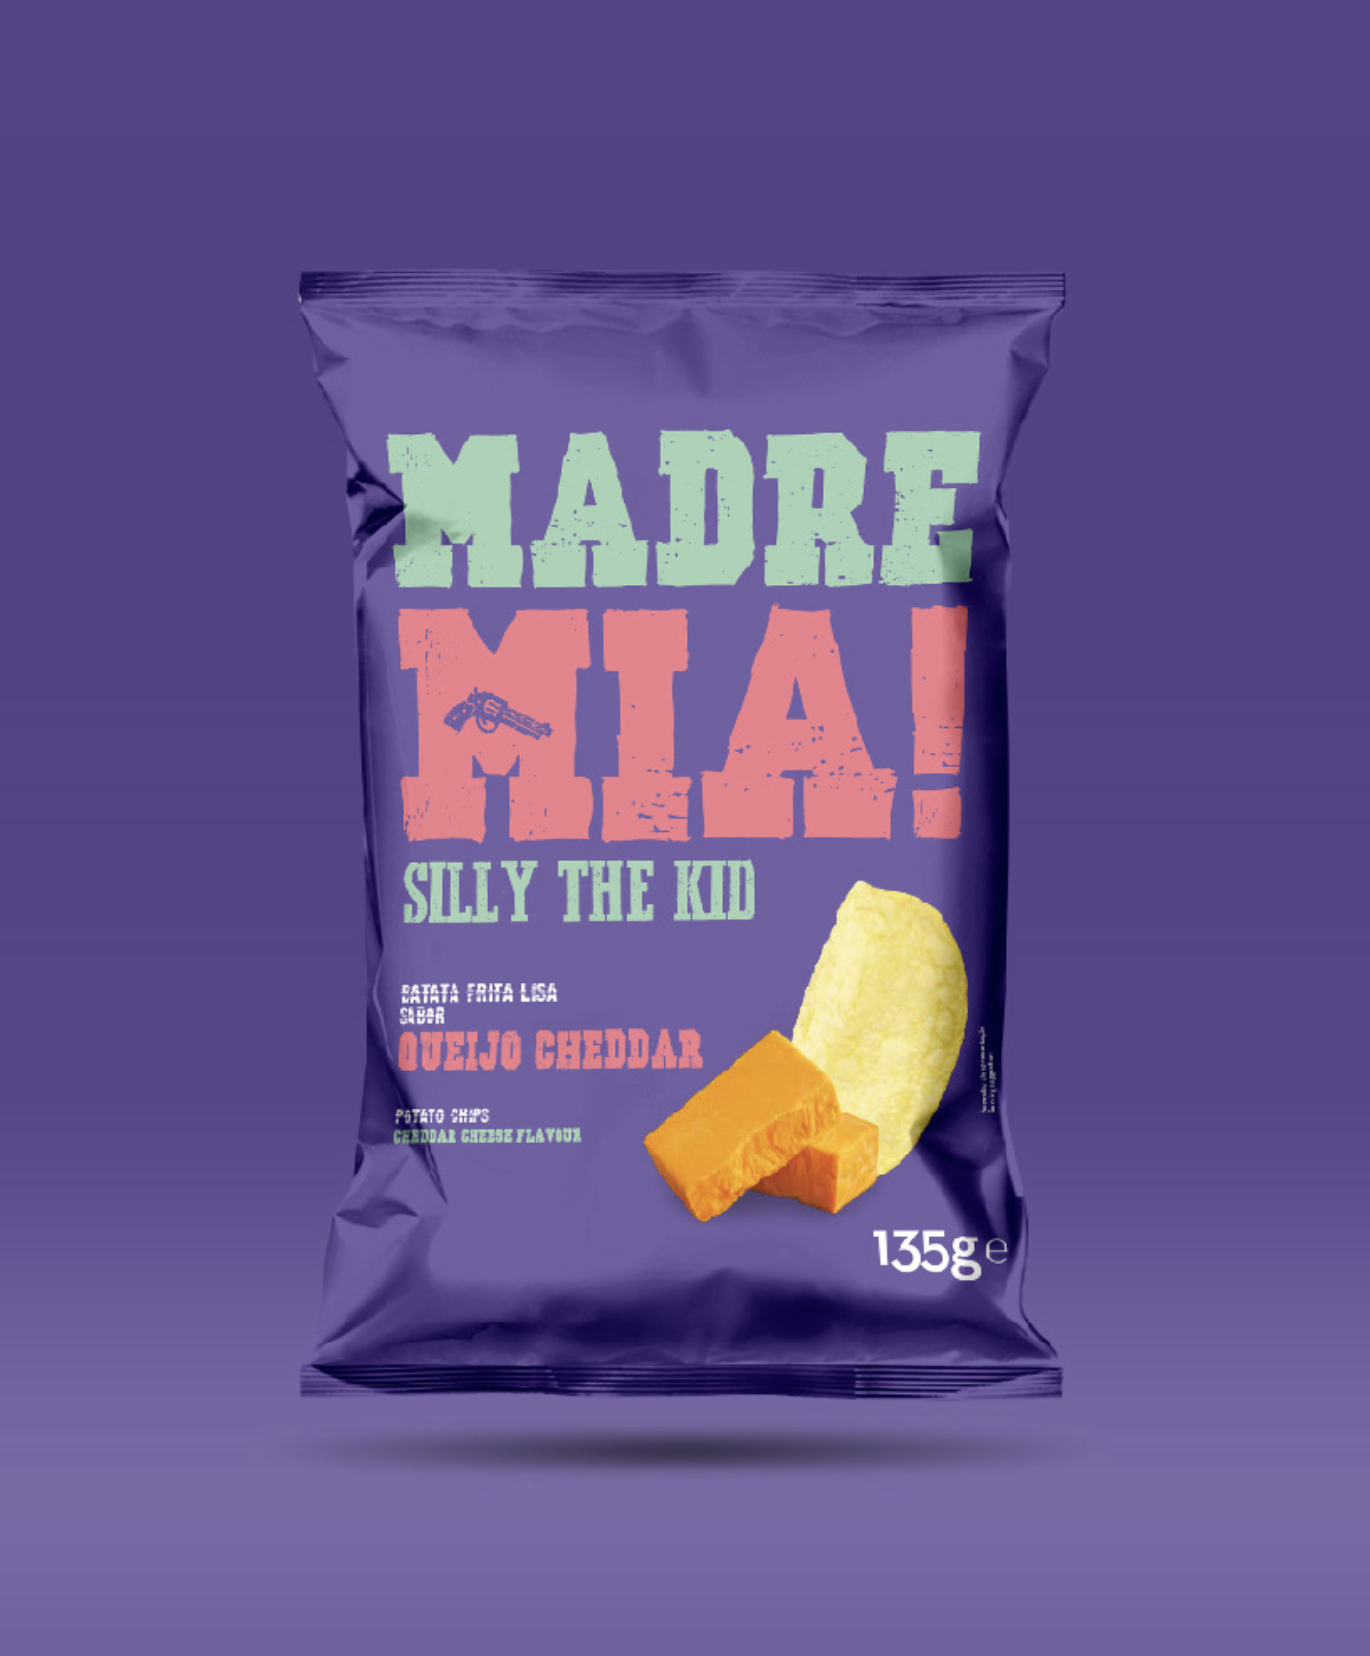 Madre Mia continente chips packaging